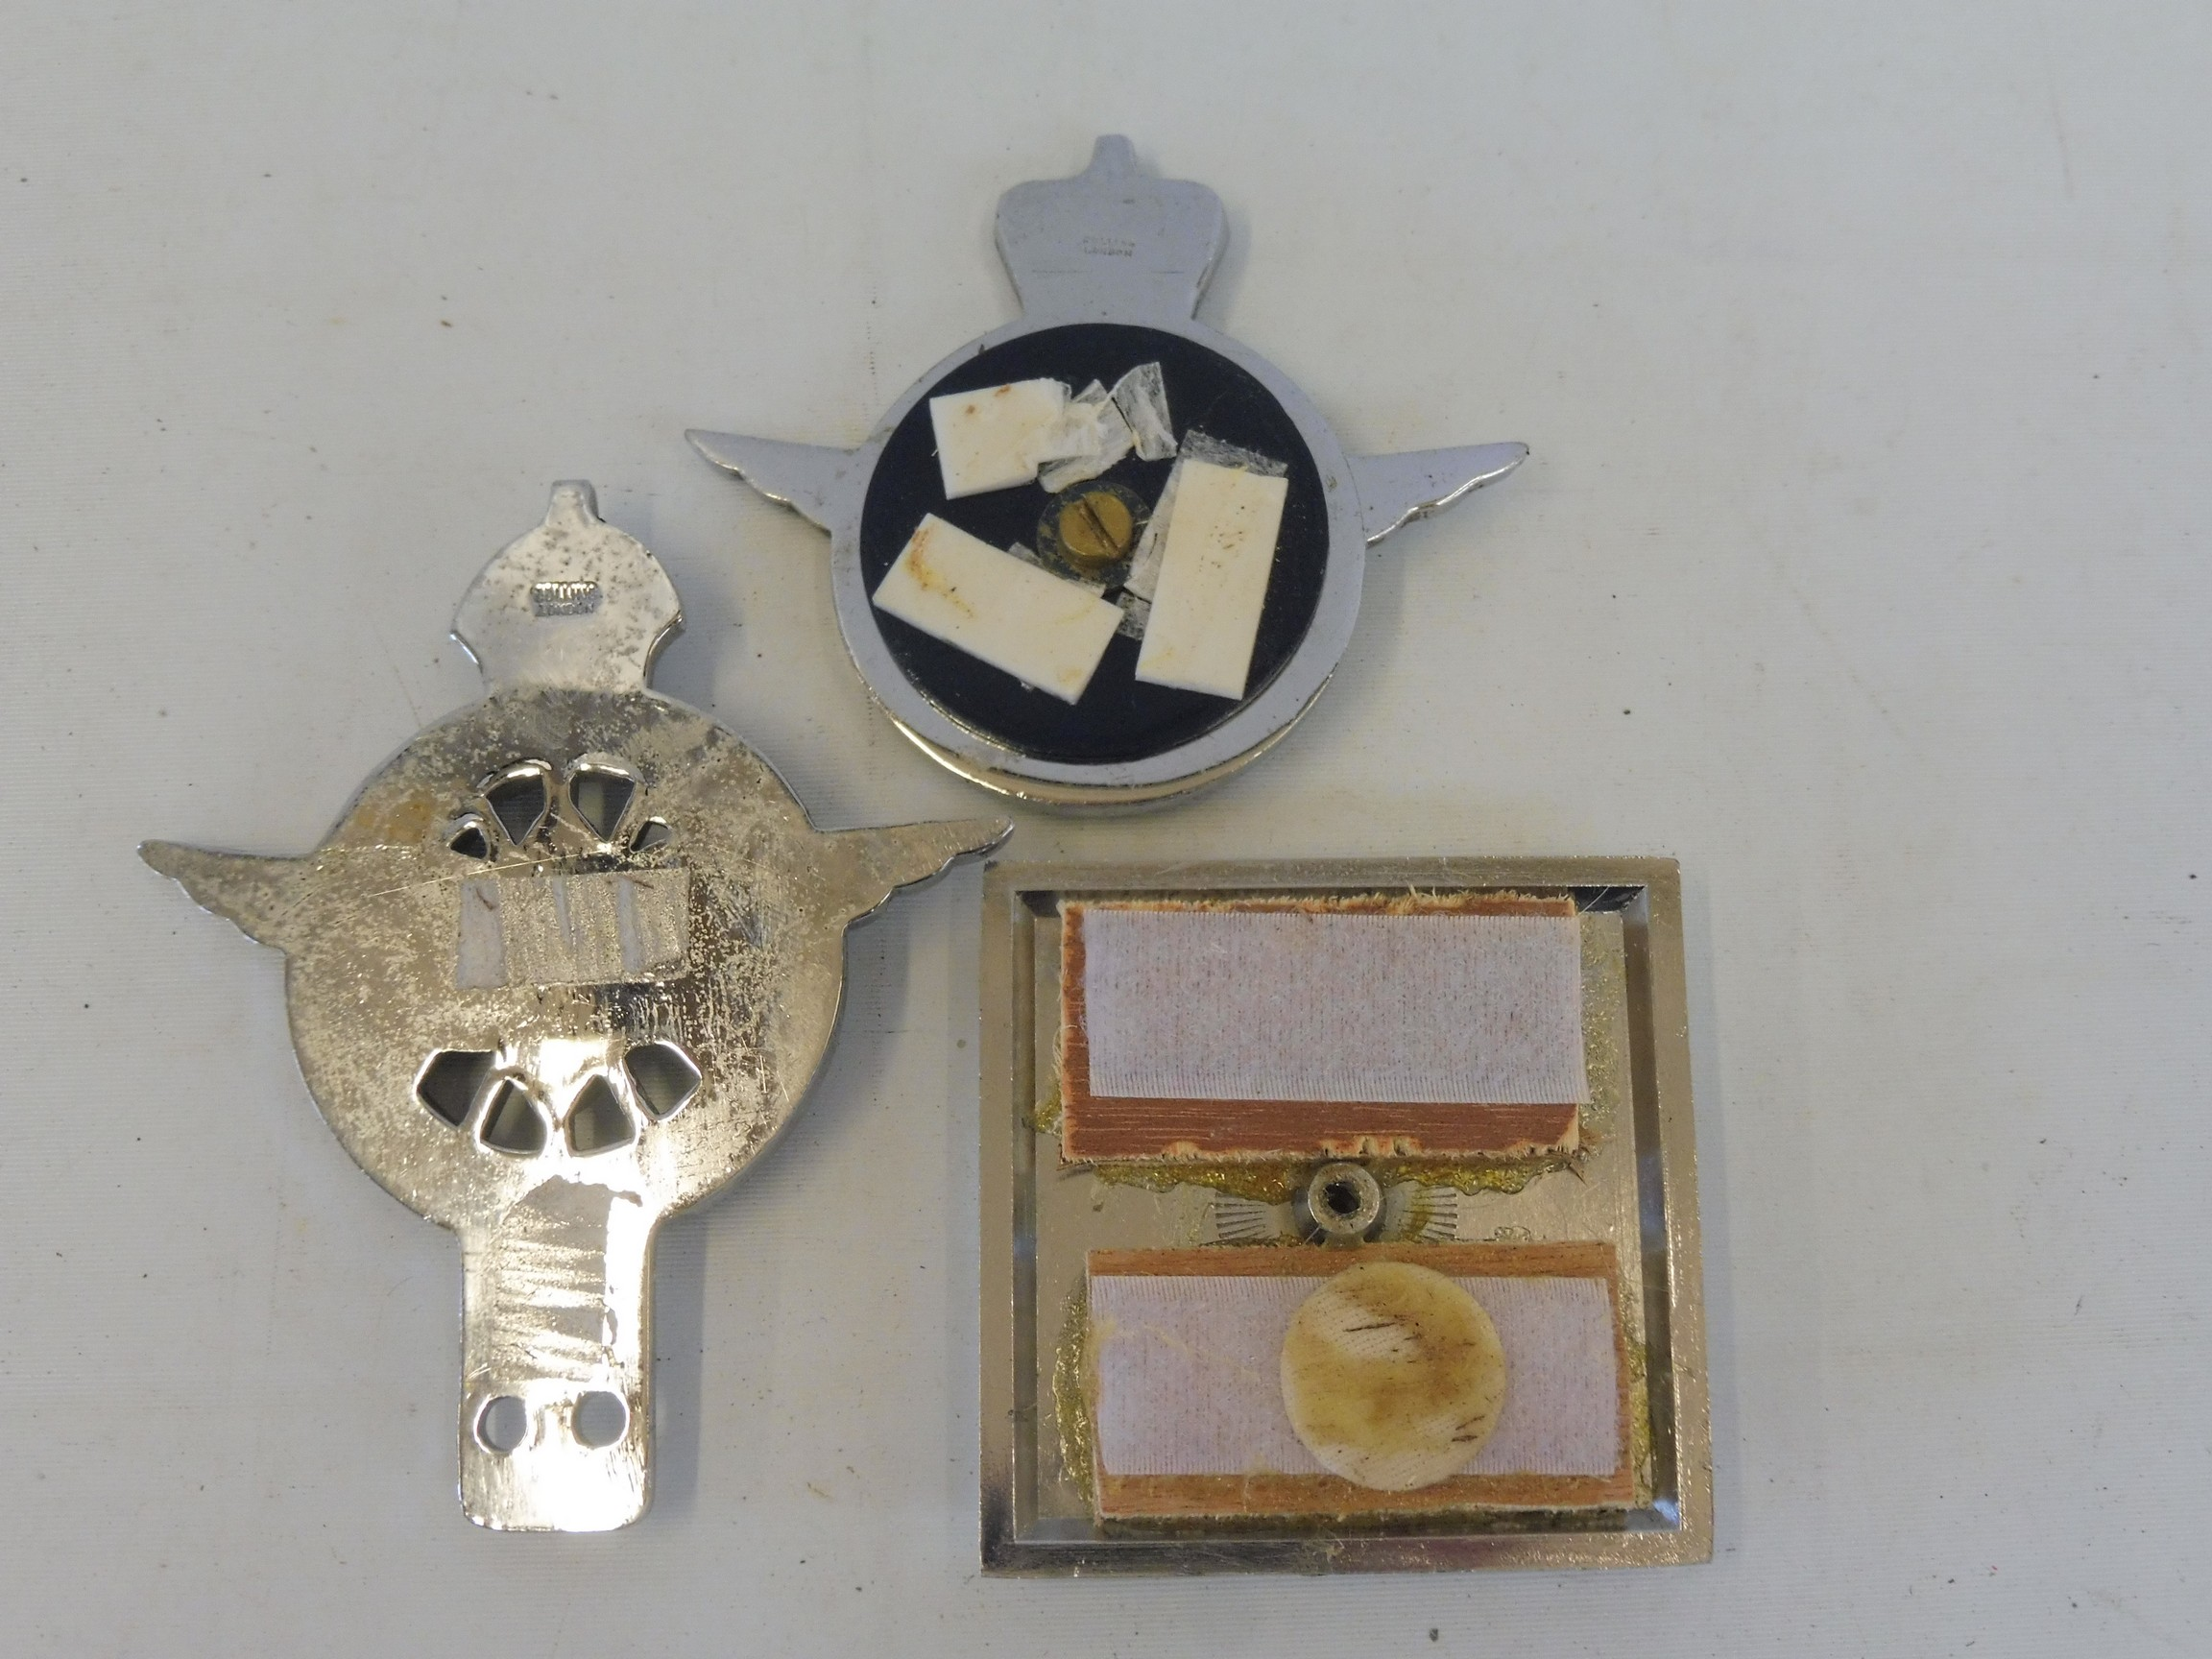 A Civil Service Motoring Association Series type 3 car badge, circa 1930s, chrome plated brass and - Image 2 of 2